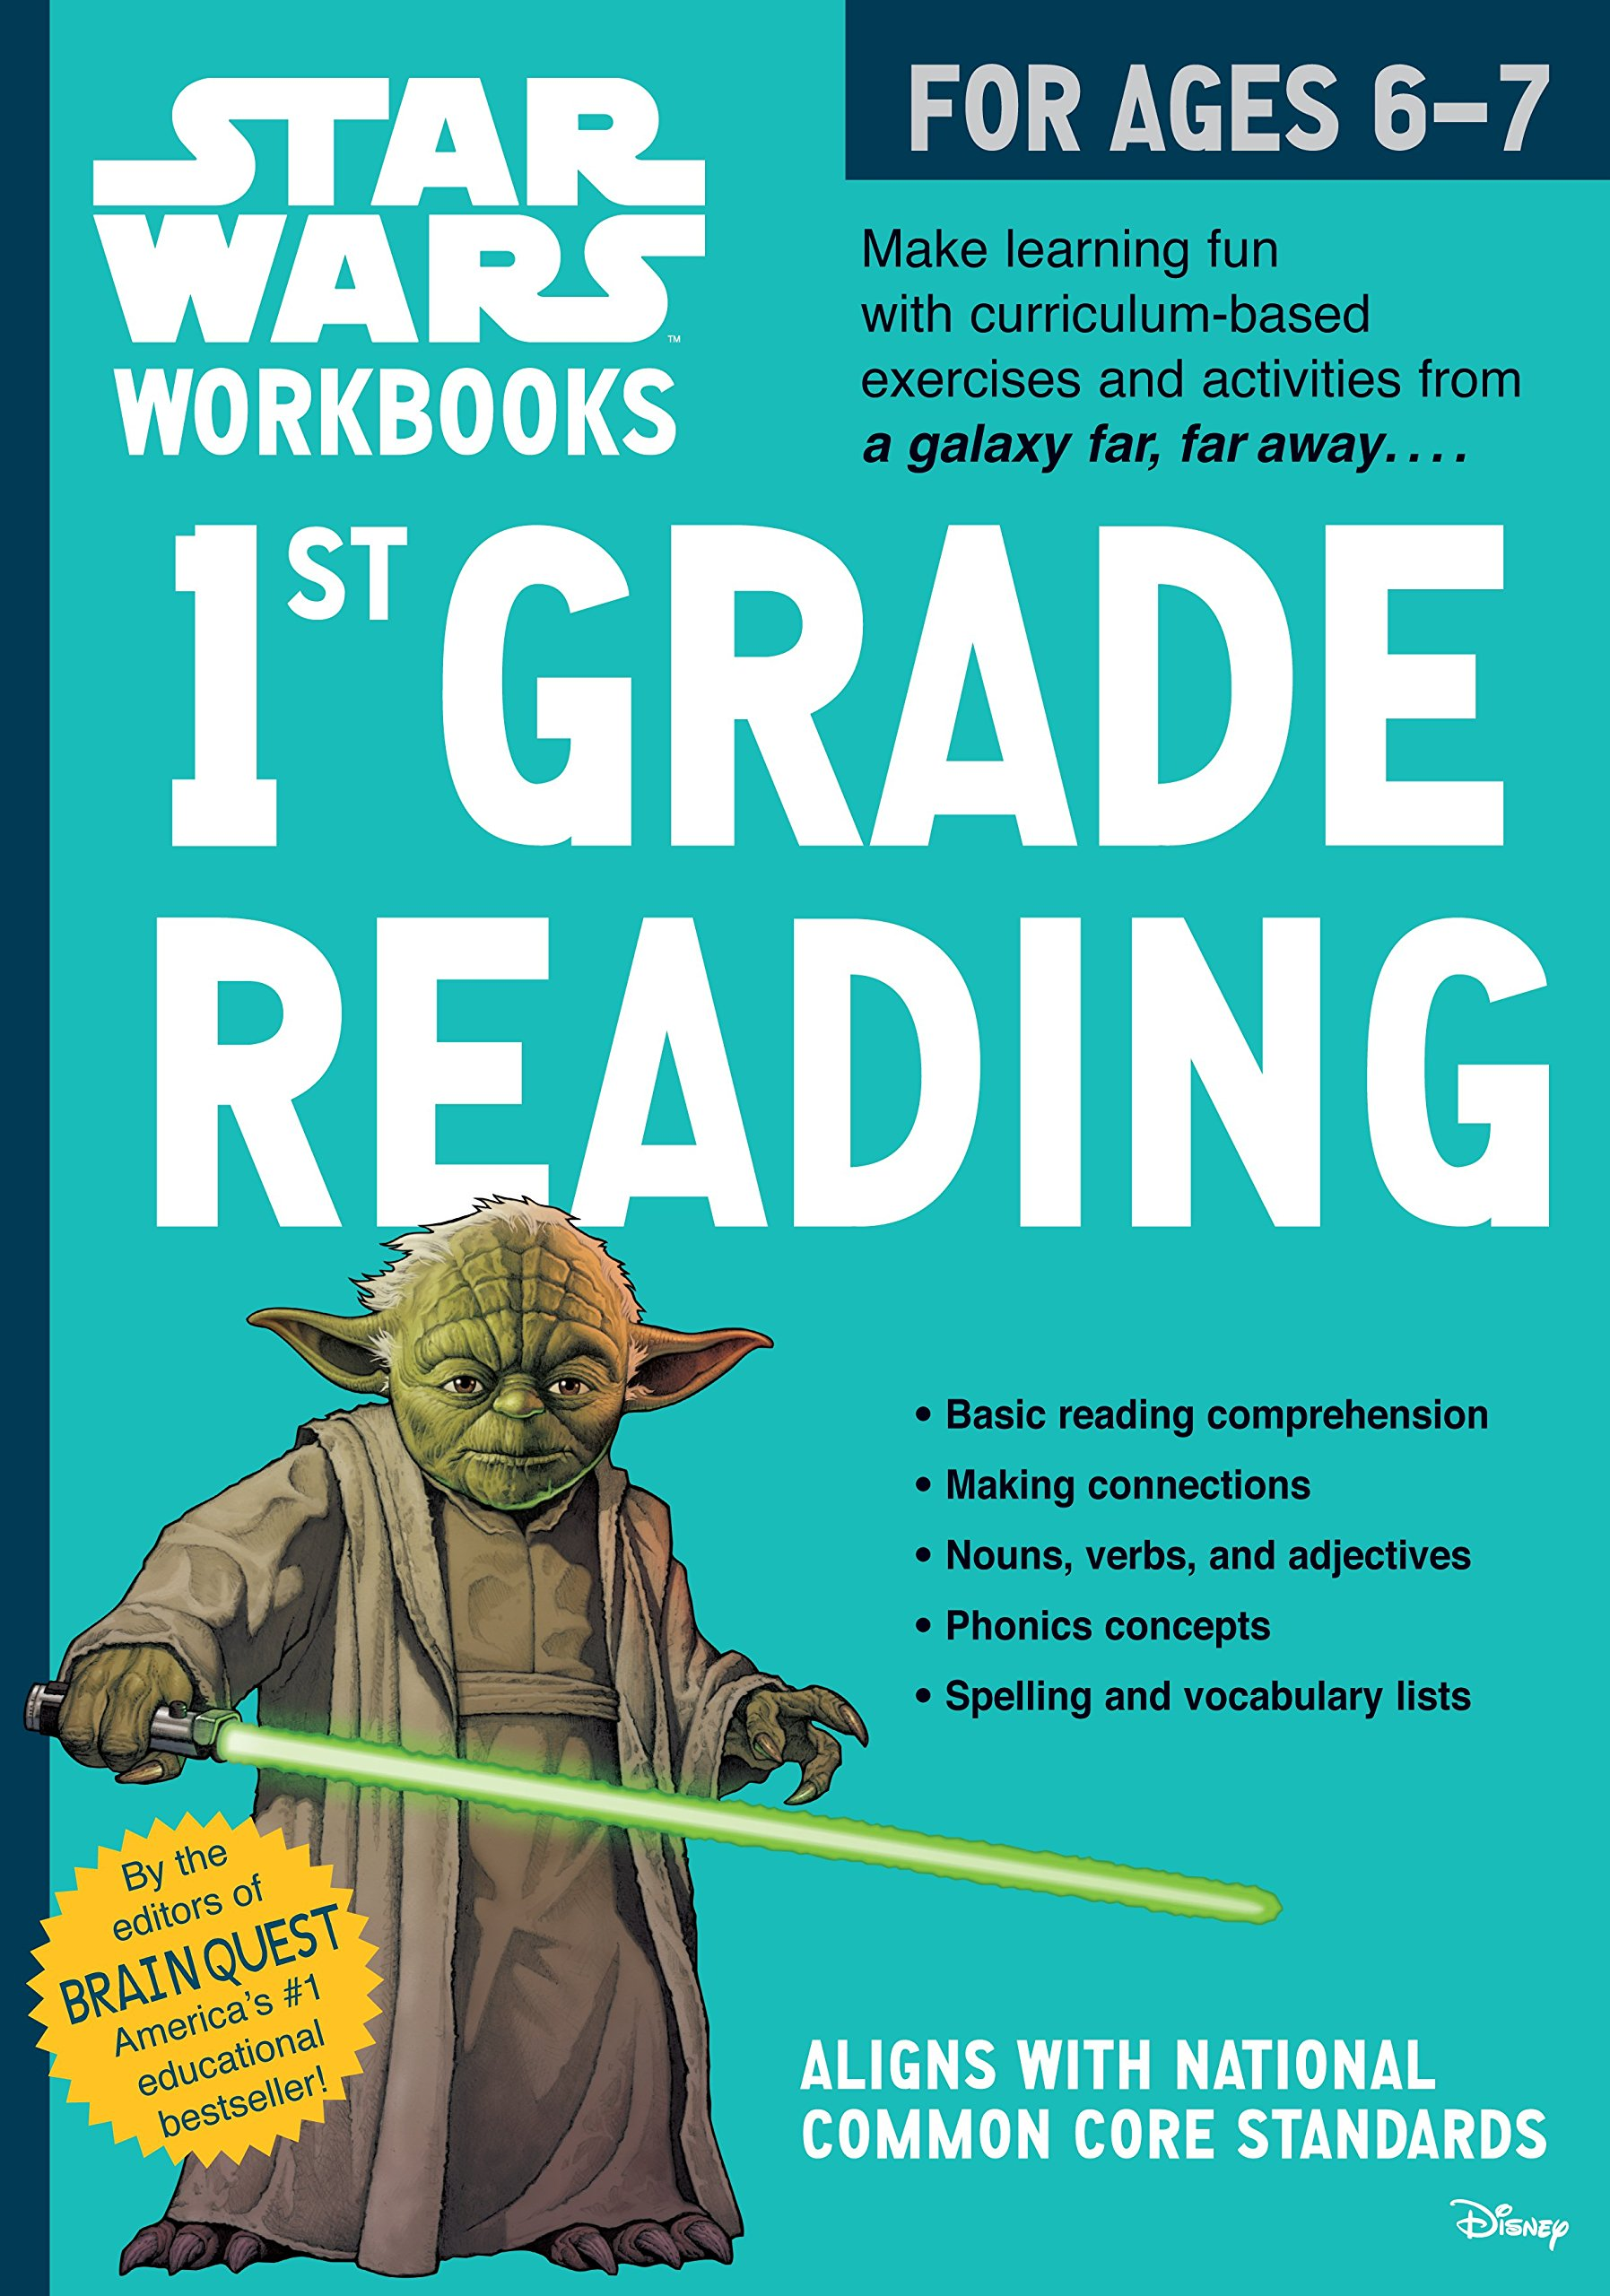 Star Wars Workbooks: 1st Grade Reading